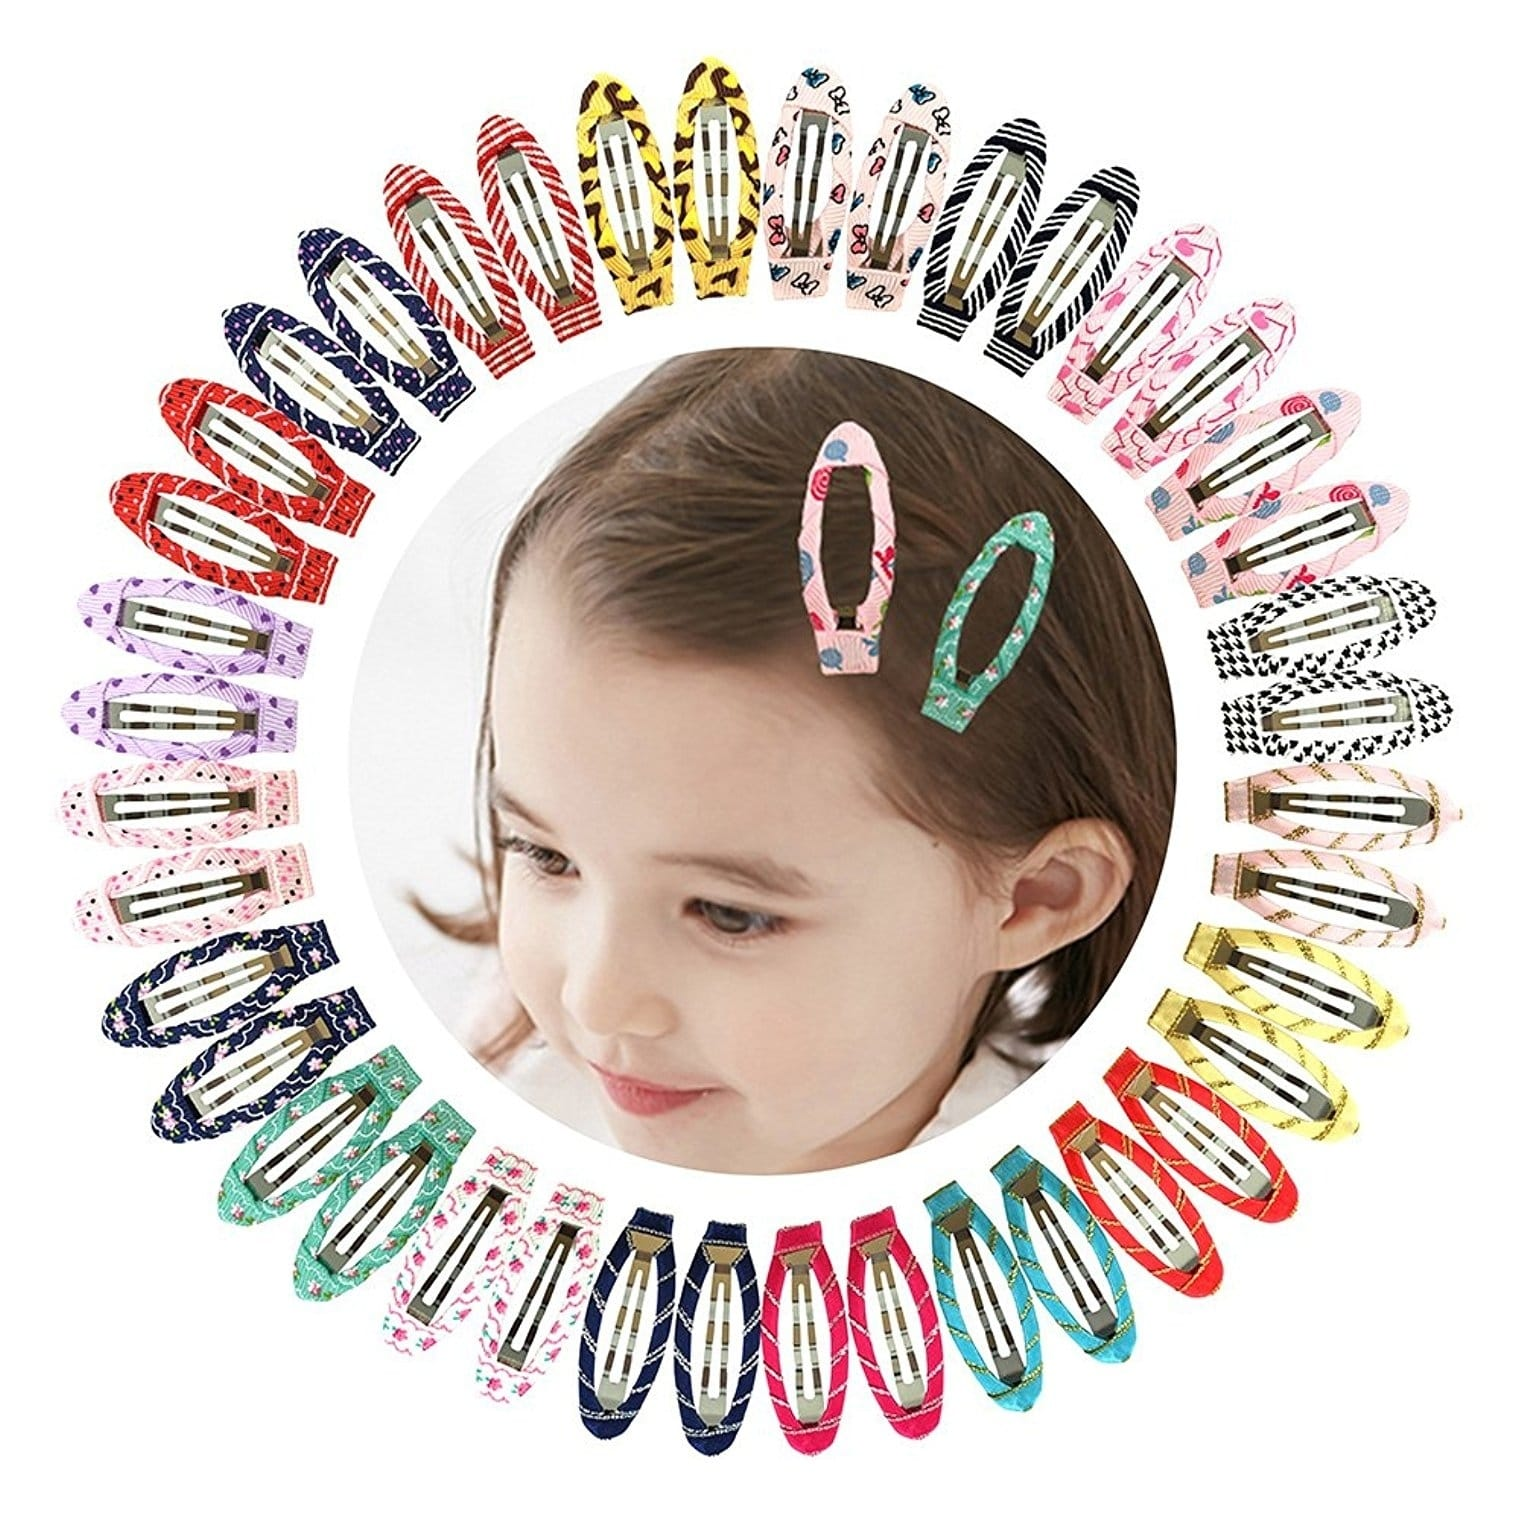 "2"" Snap Clips No Slip Wrapped Hair Barrettes for Girls, 40pcs"